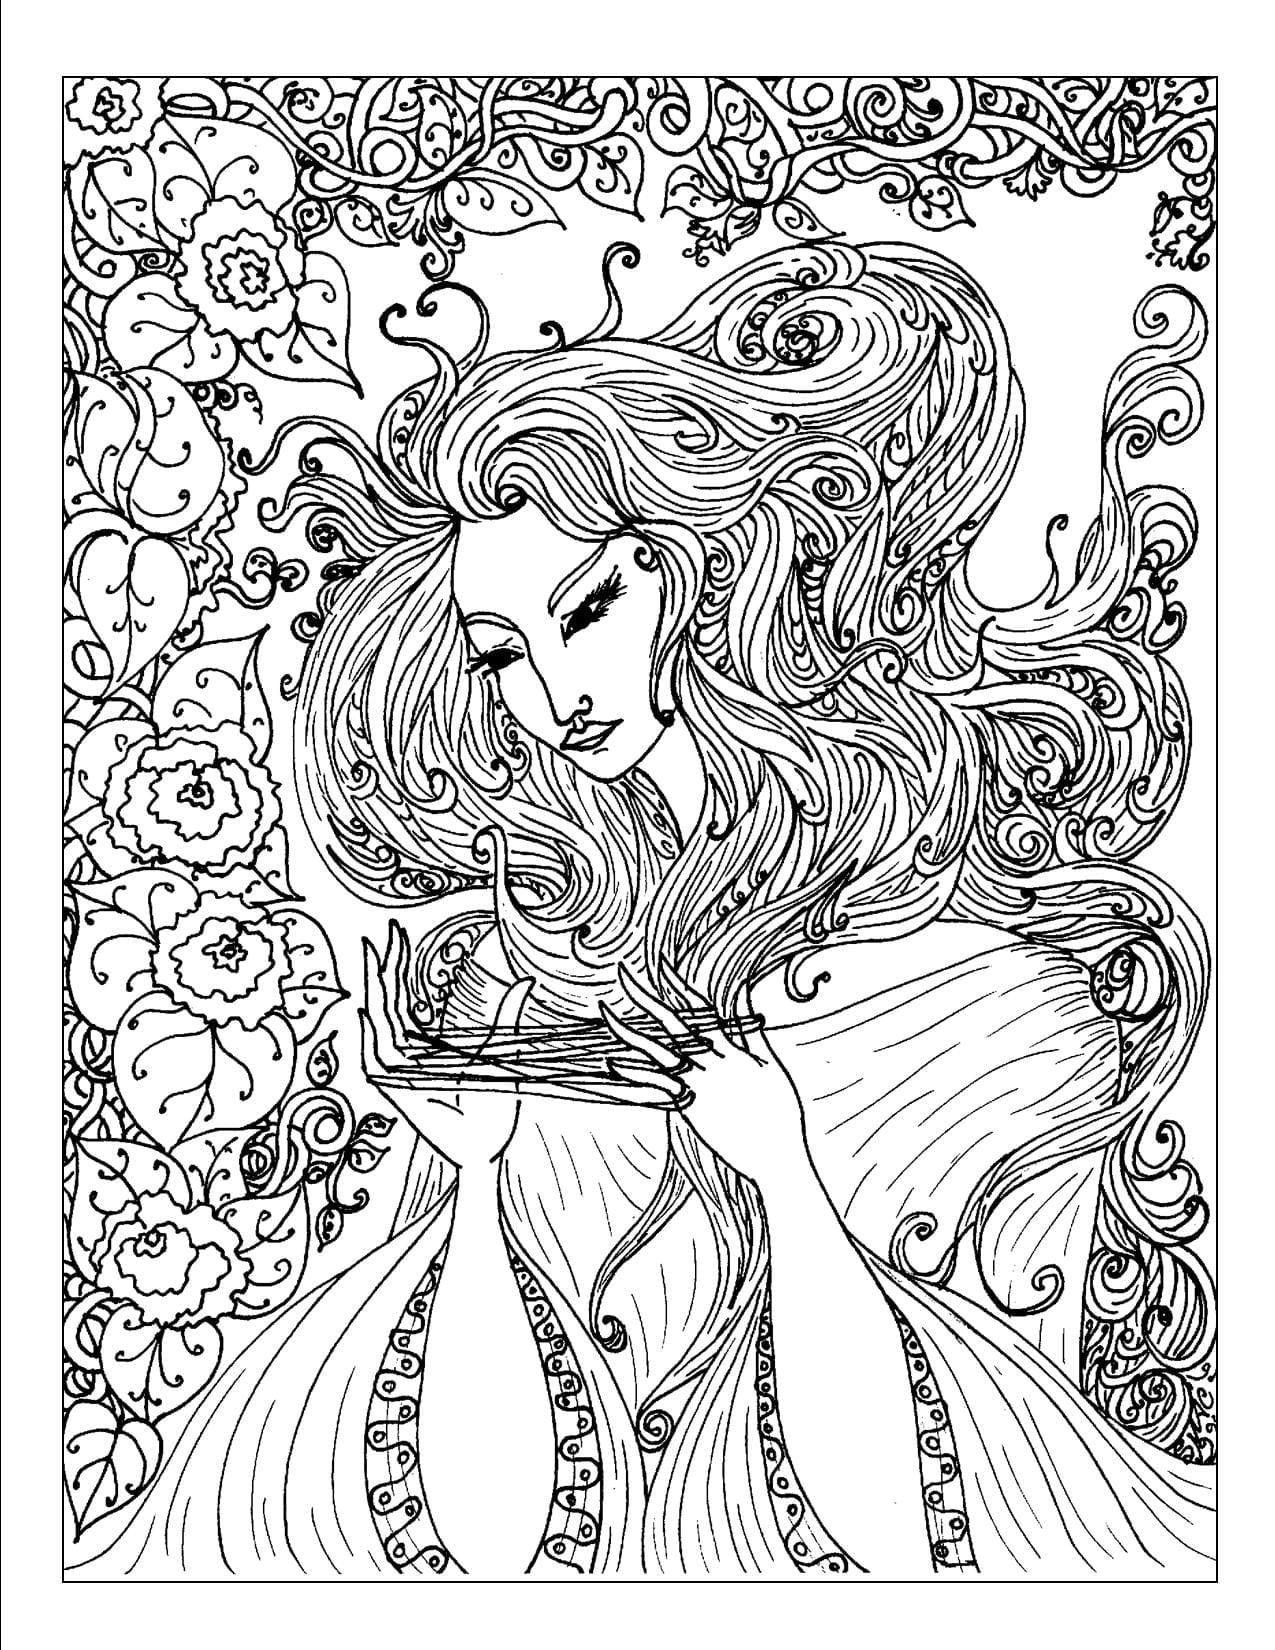 Coloring Pages Complex Lofty Design Ideas Printable Adult Free